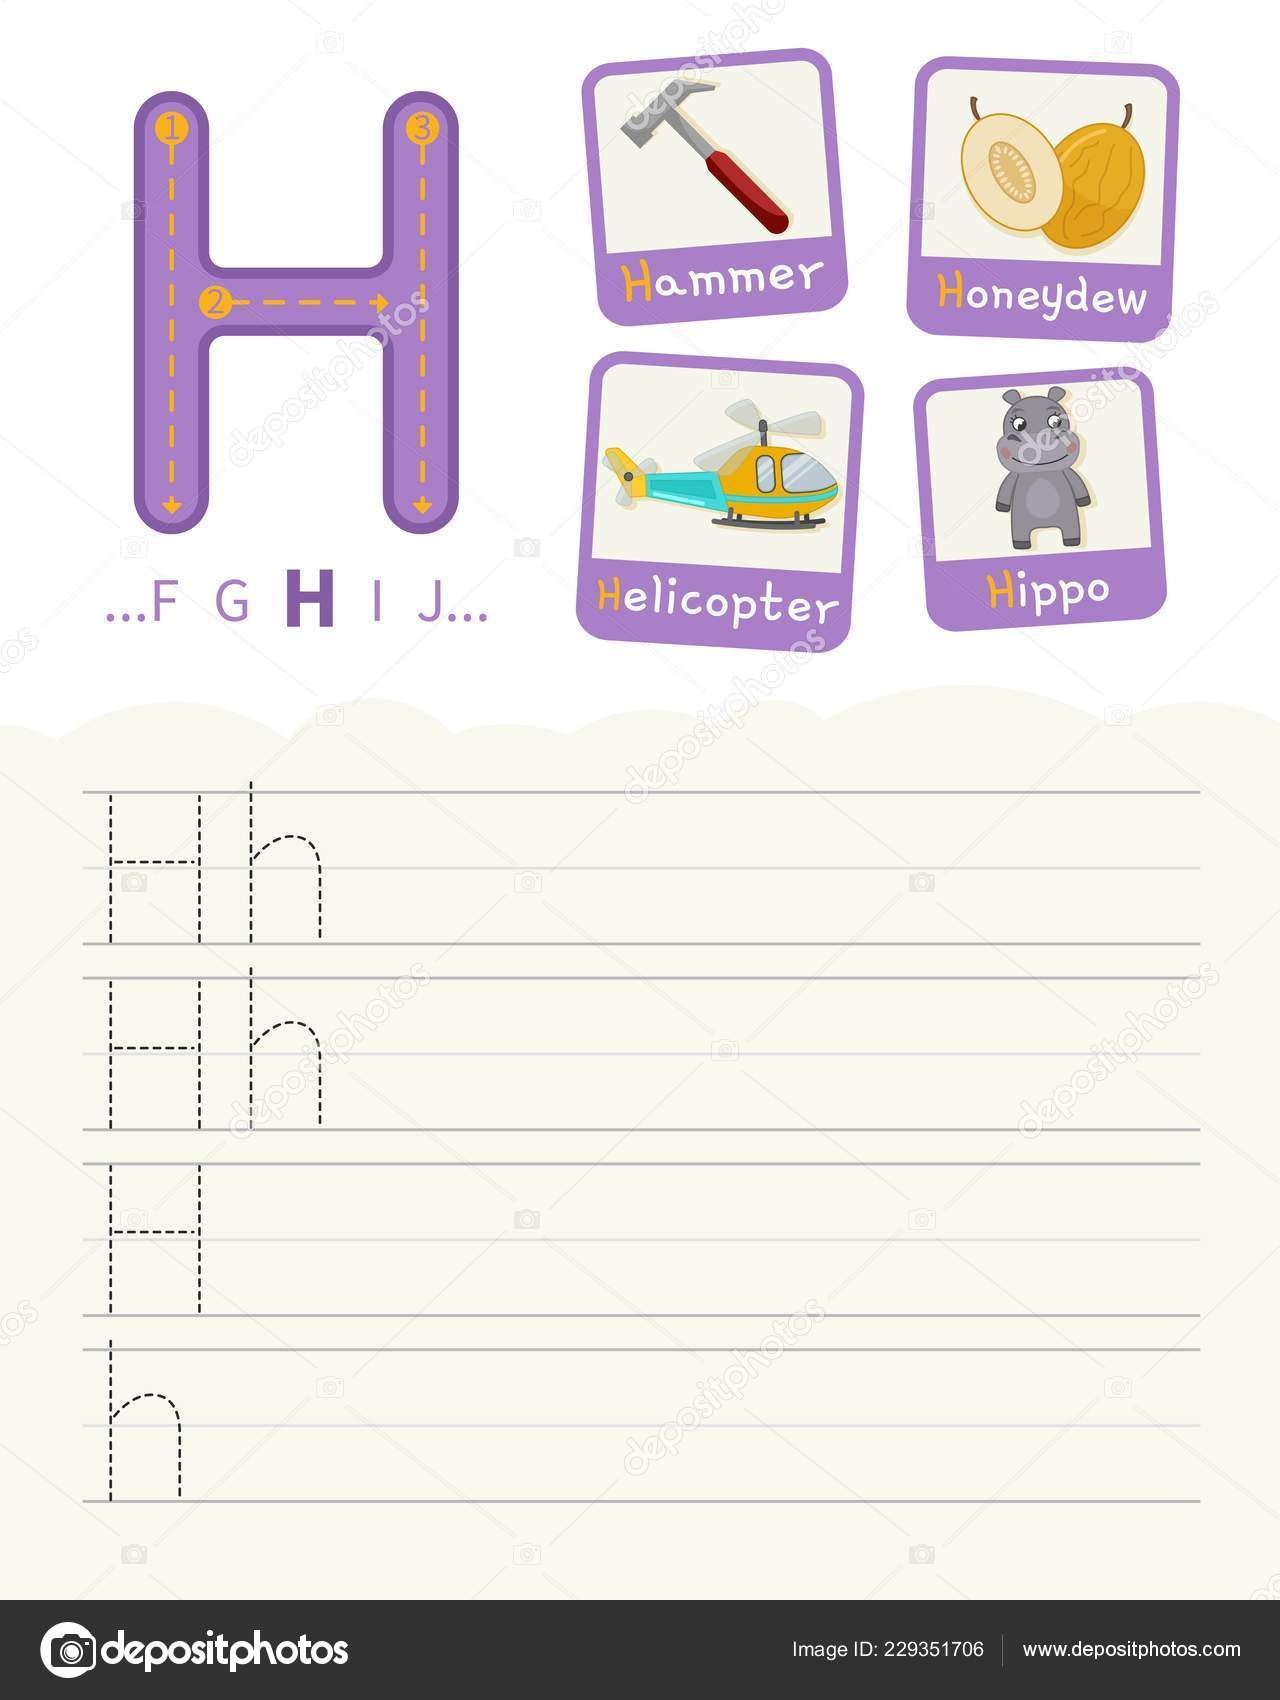 Handwriting Practice Sheet Basic Writing Educational Game